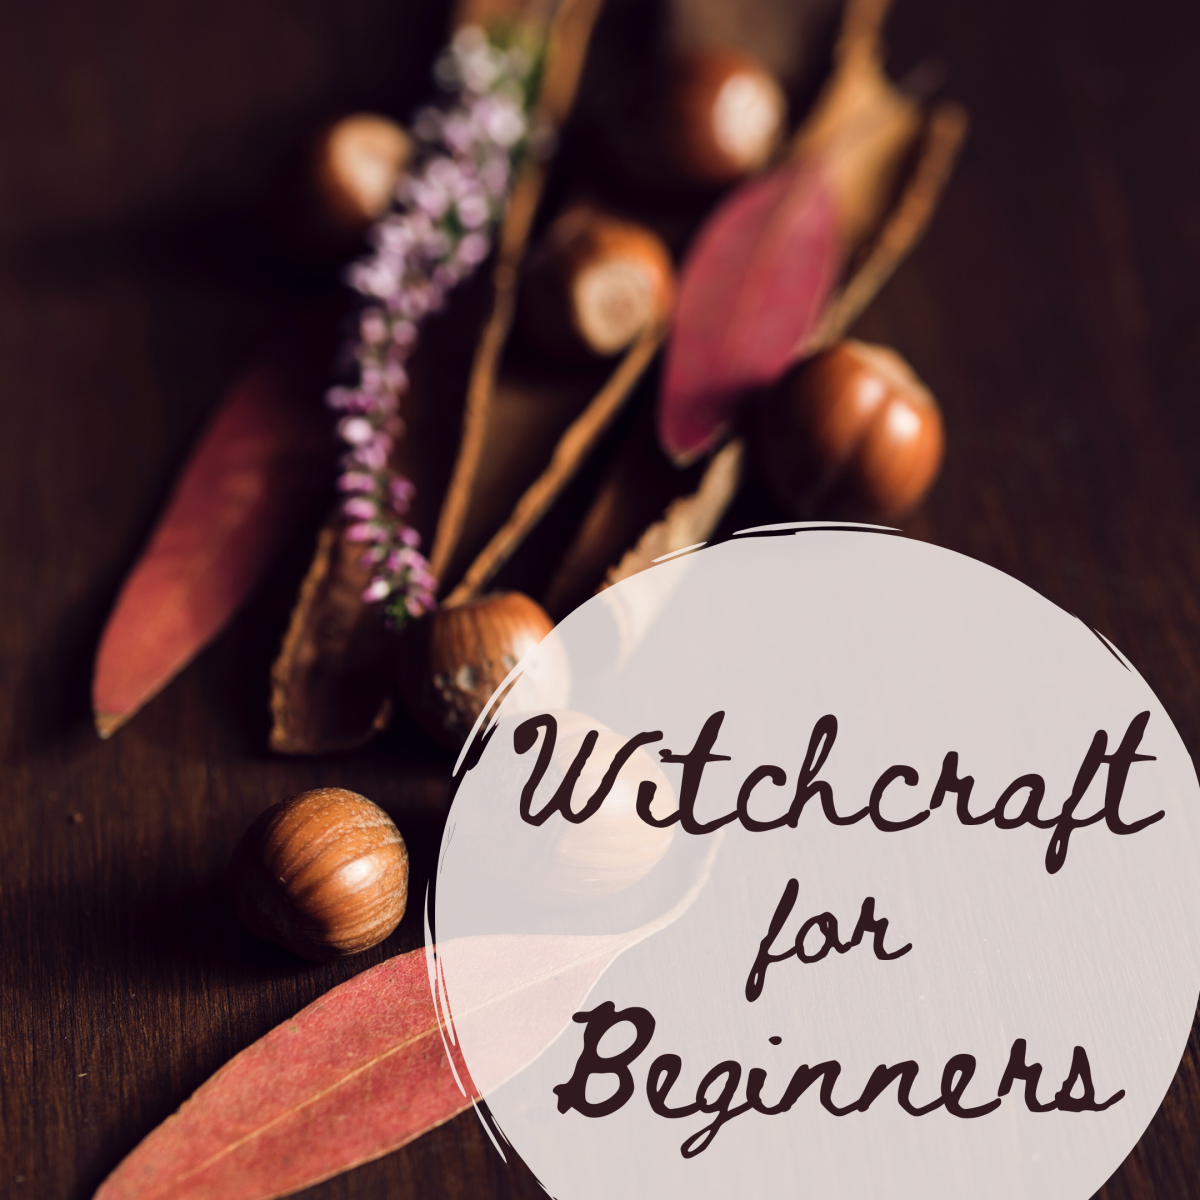 Discover seven common mistakes made by beginner witches and learn how to avoid them.